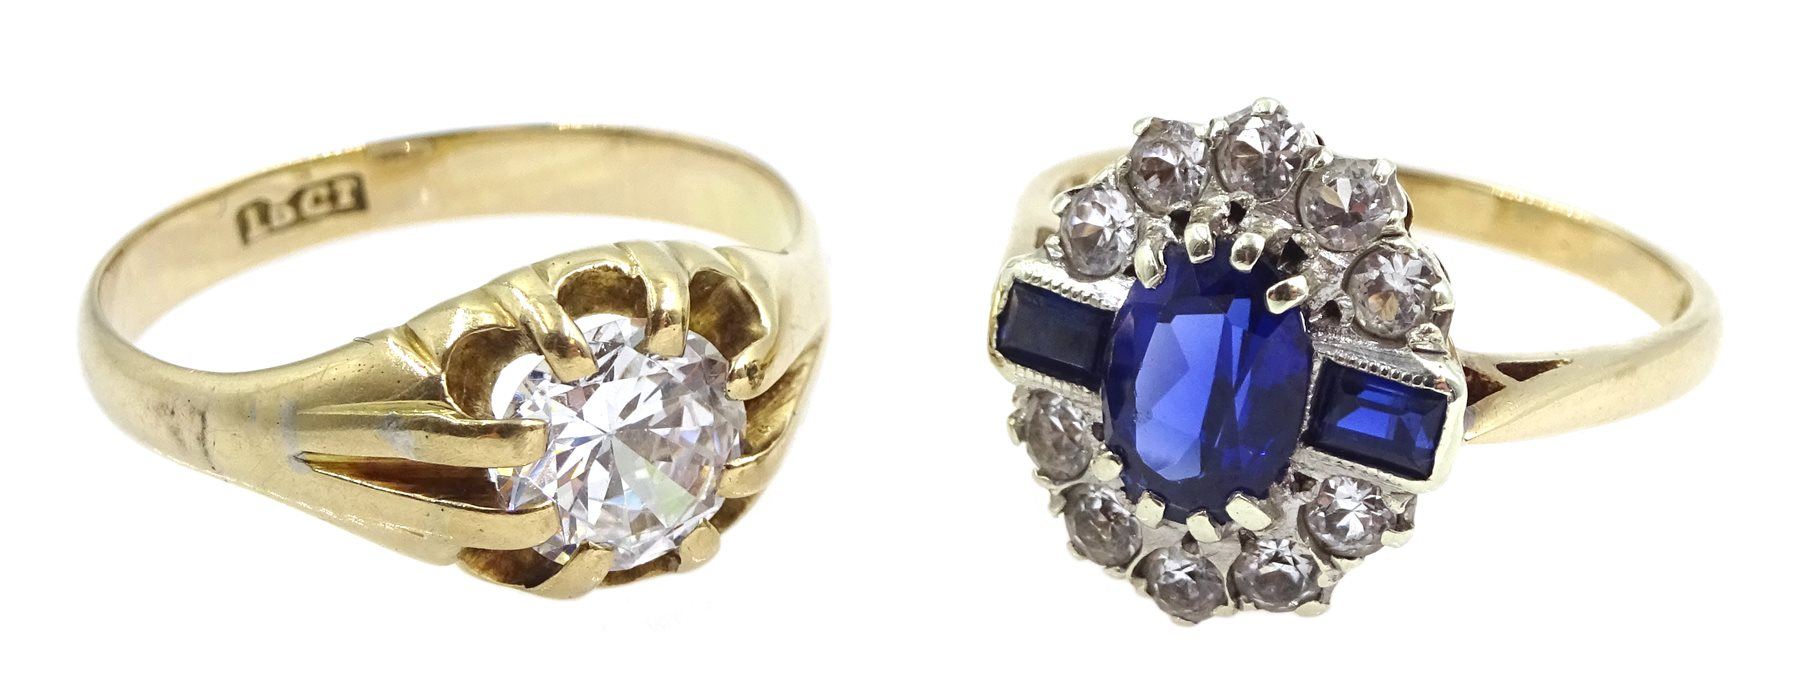 9ct gold cubic zirconia and synthetic sapphire dress ring stamped and a 13ct gold gentleman's single